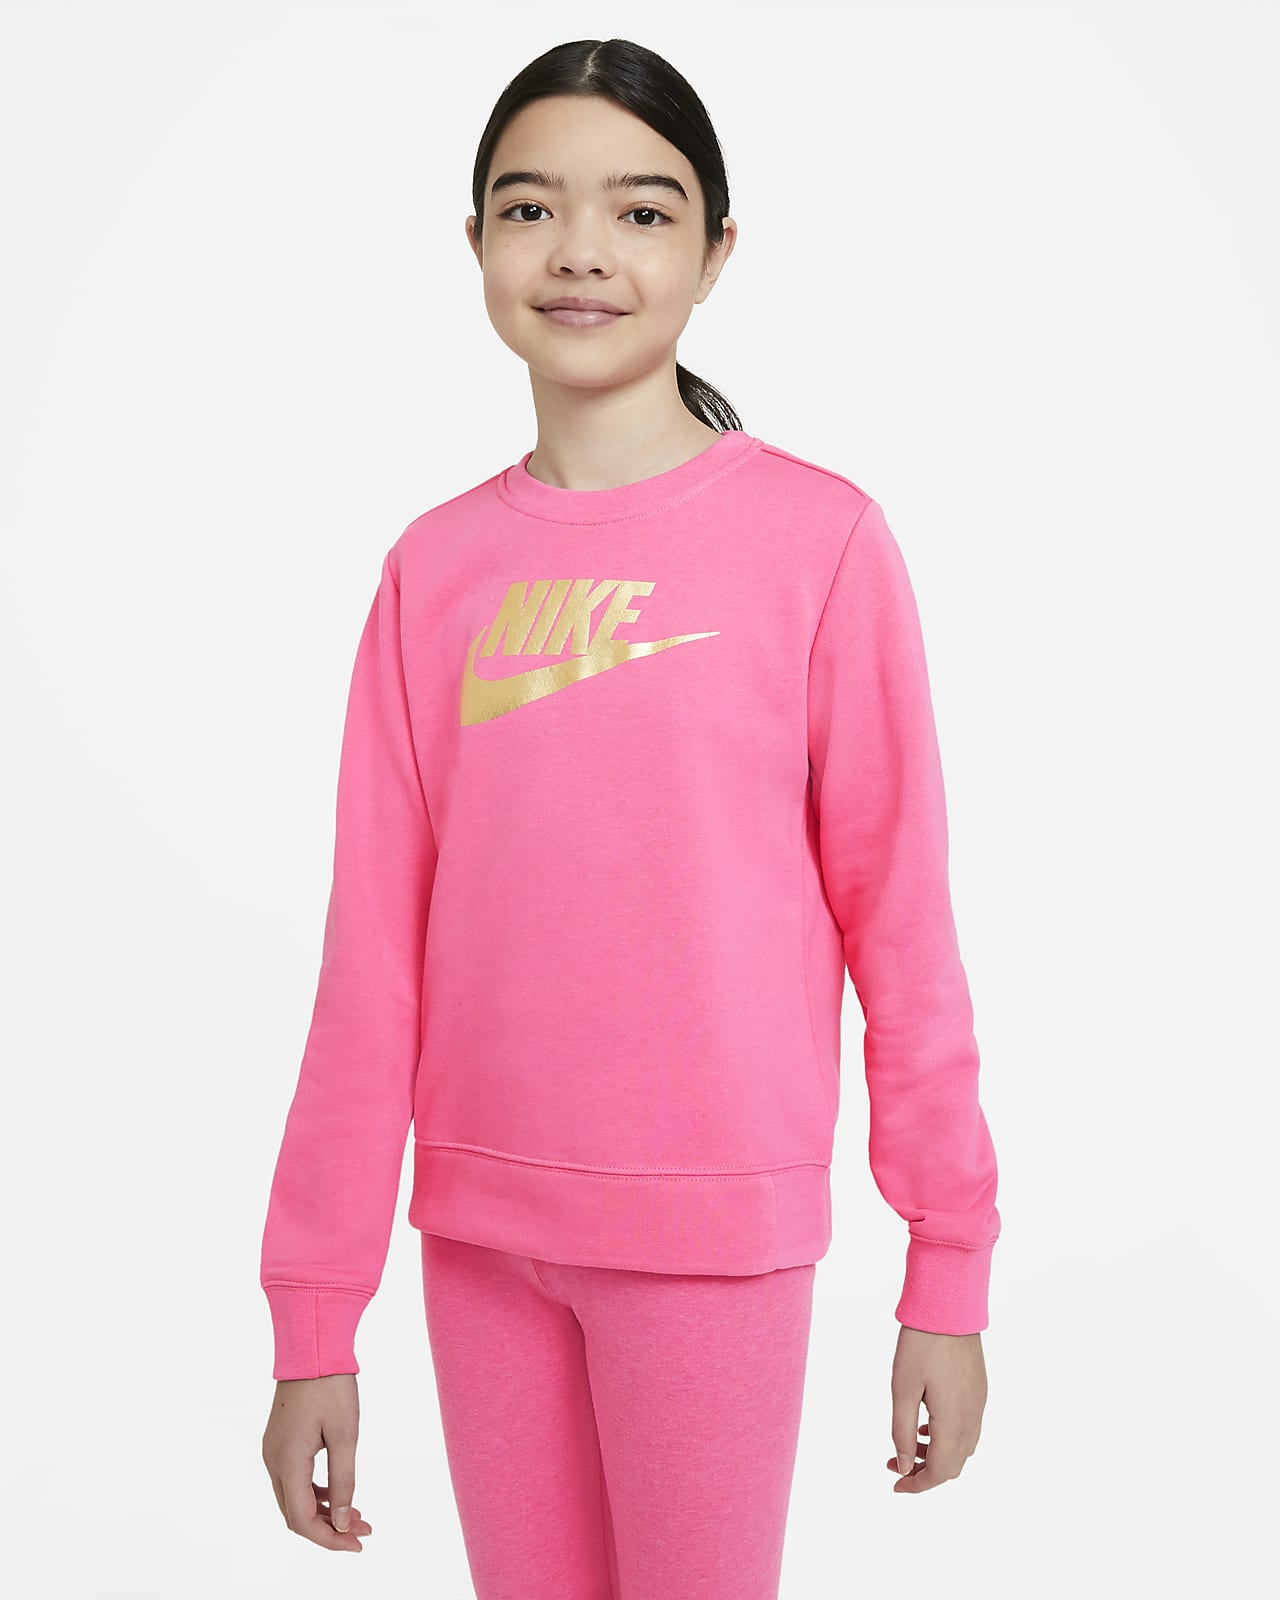 Nike Sportswear Older Kids' (Girls') French Terry Crew